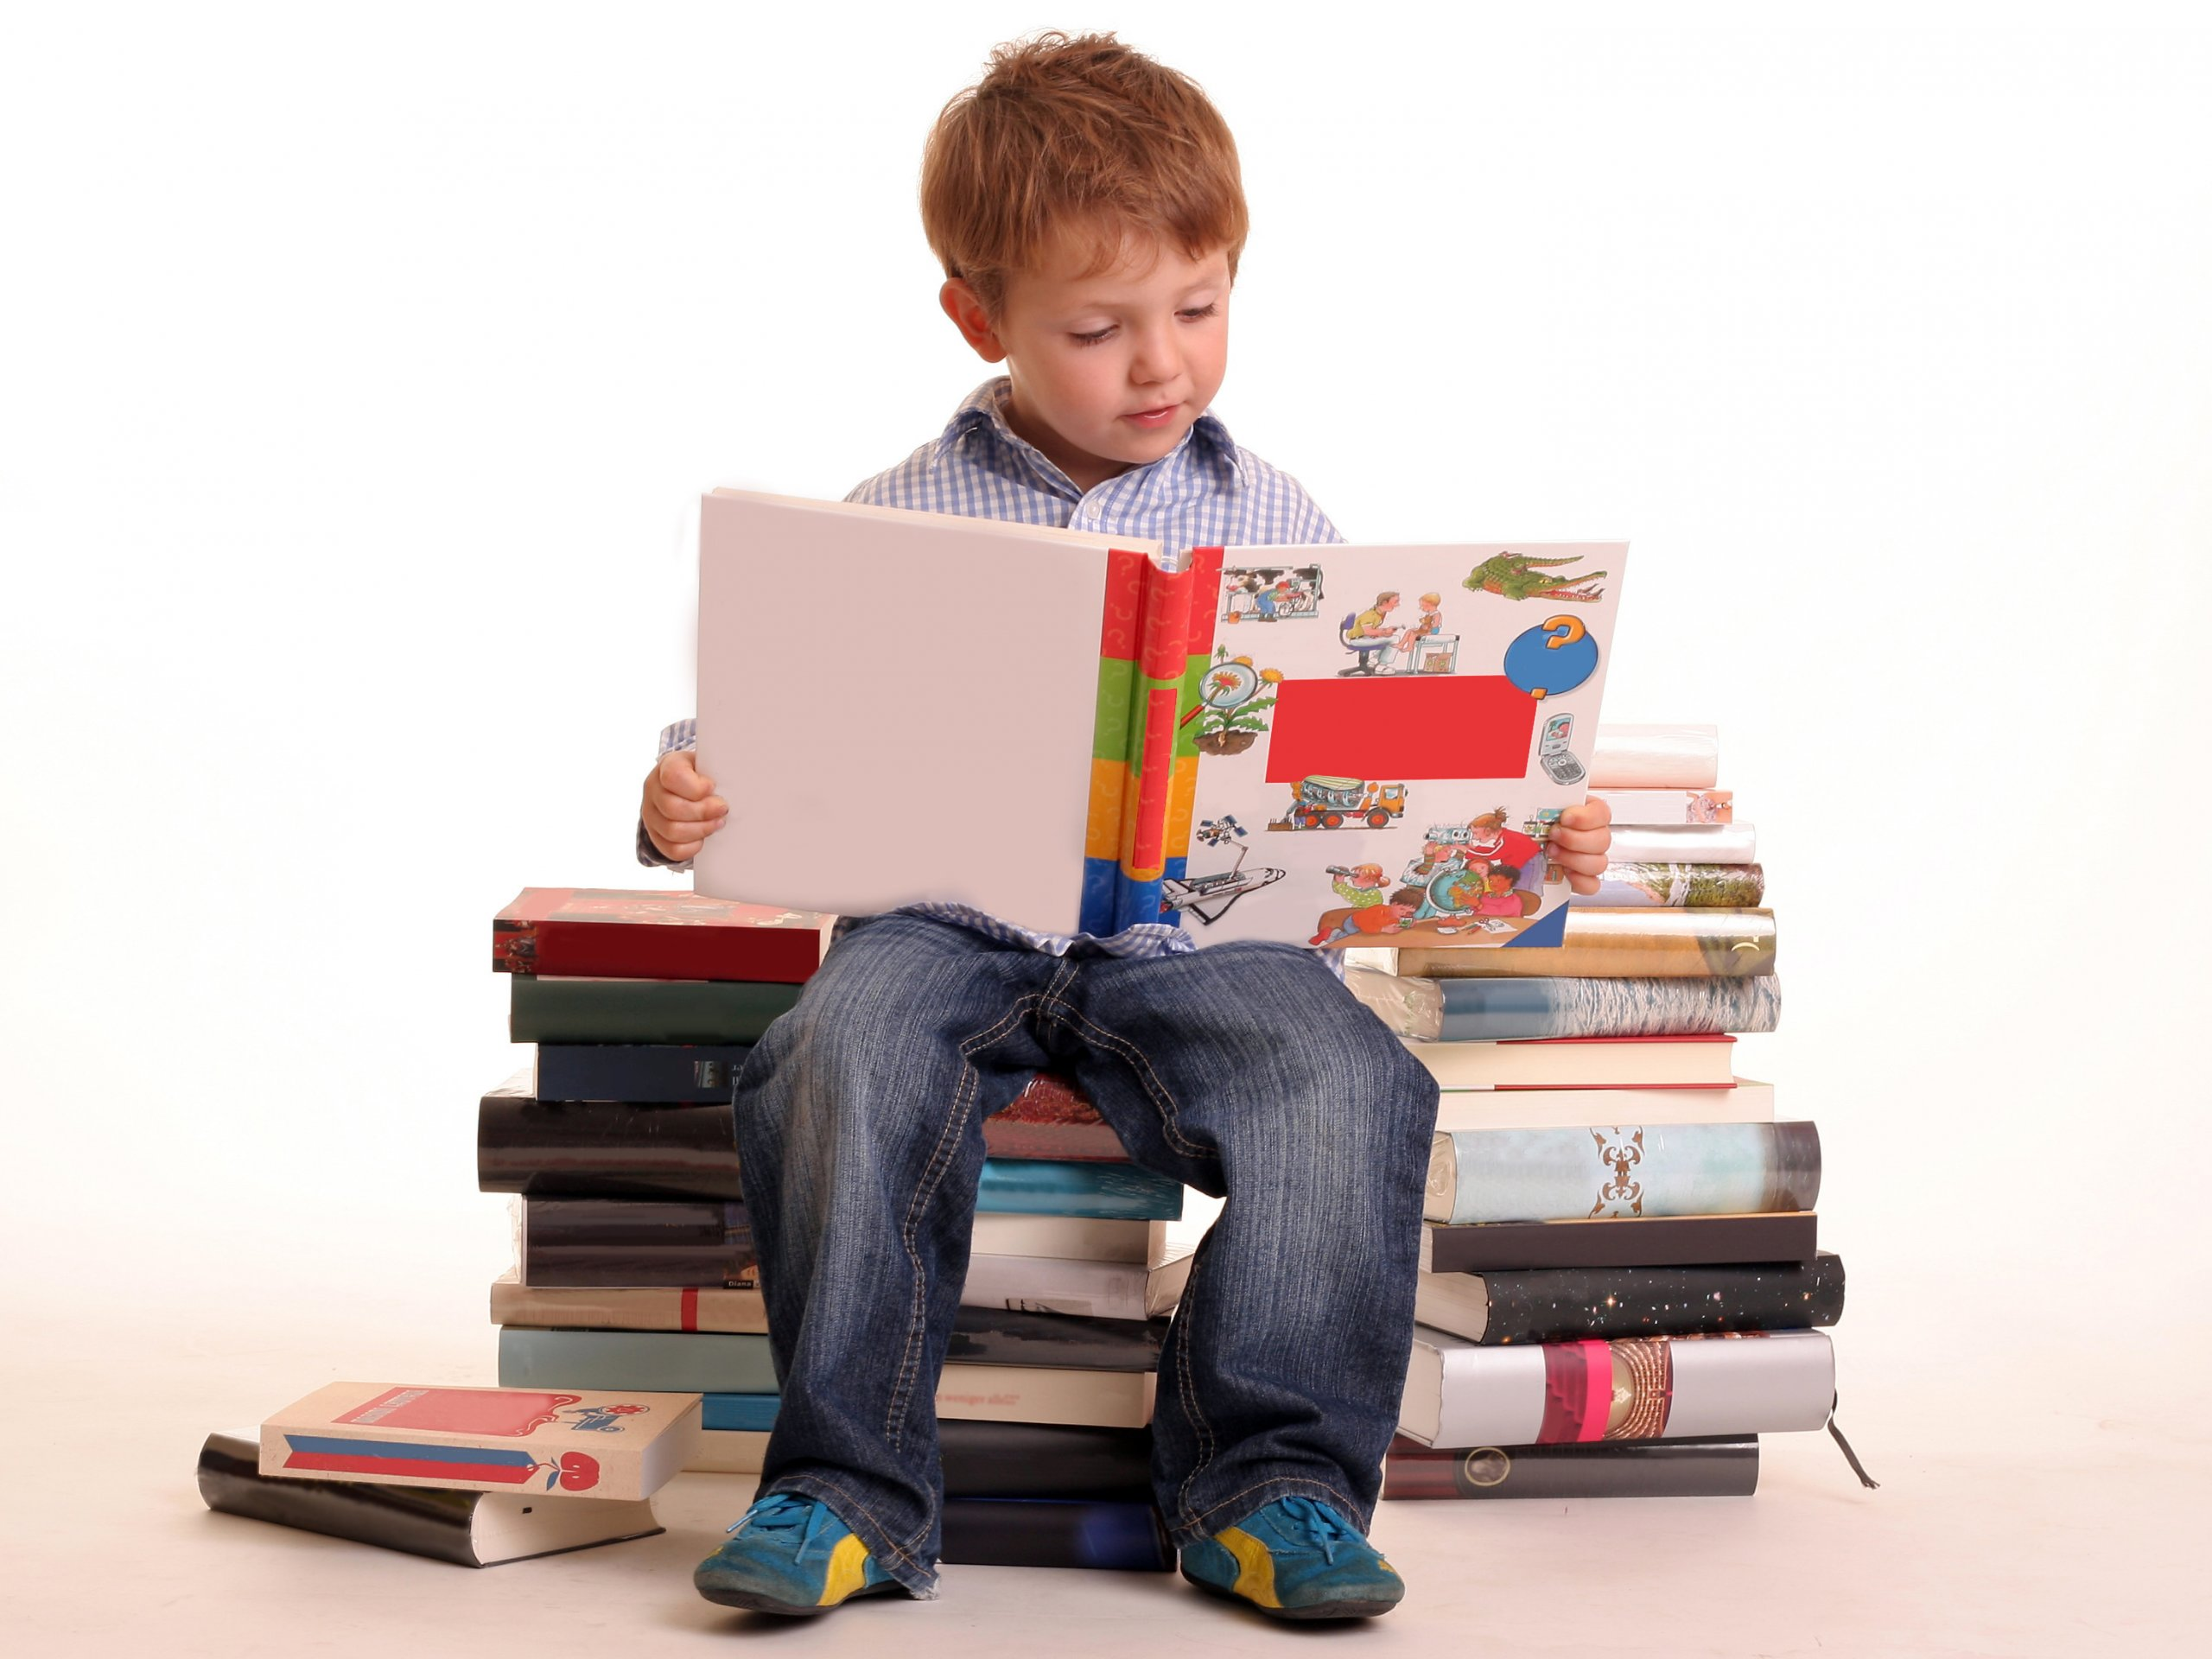 Five Ways To Keep Children Busy Without Giving Them Gadgets